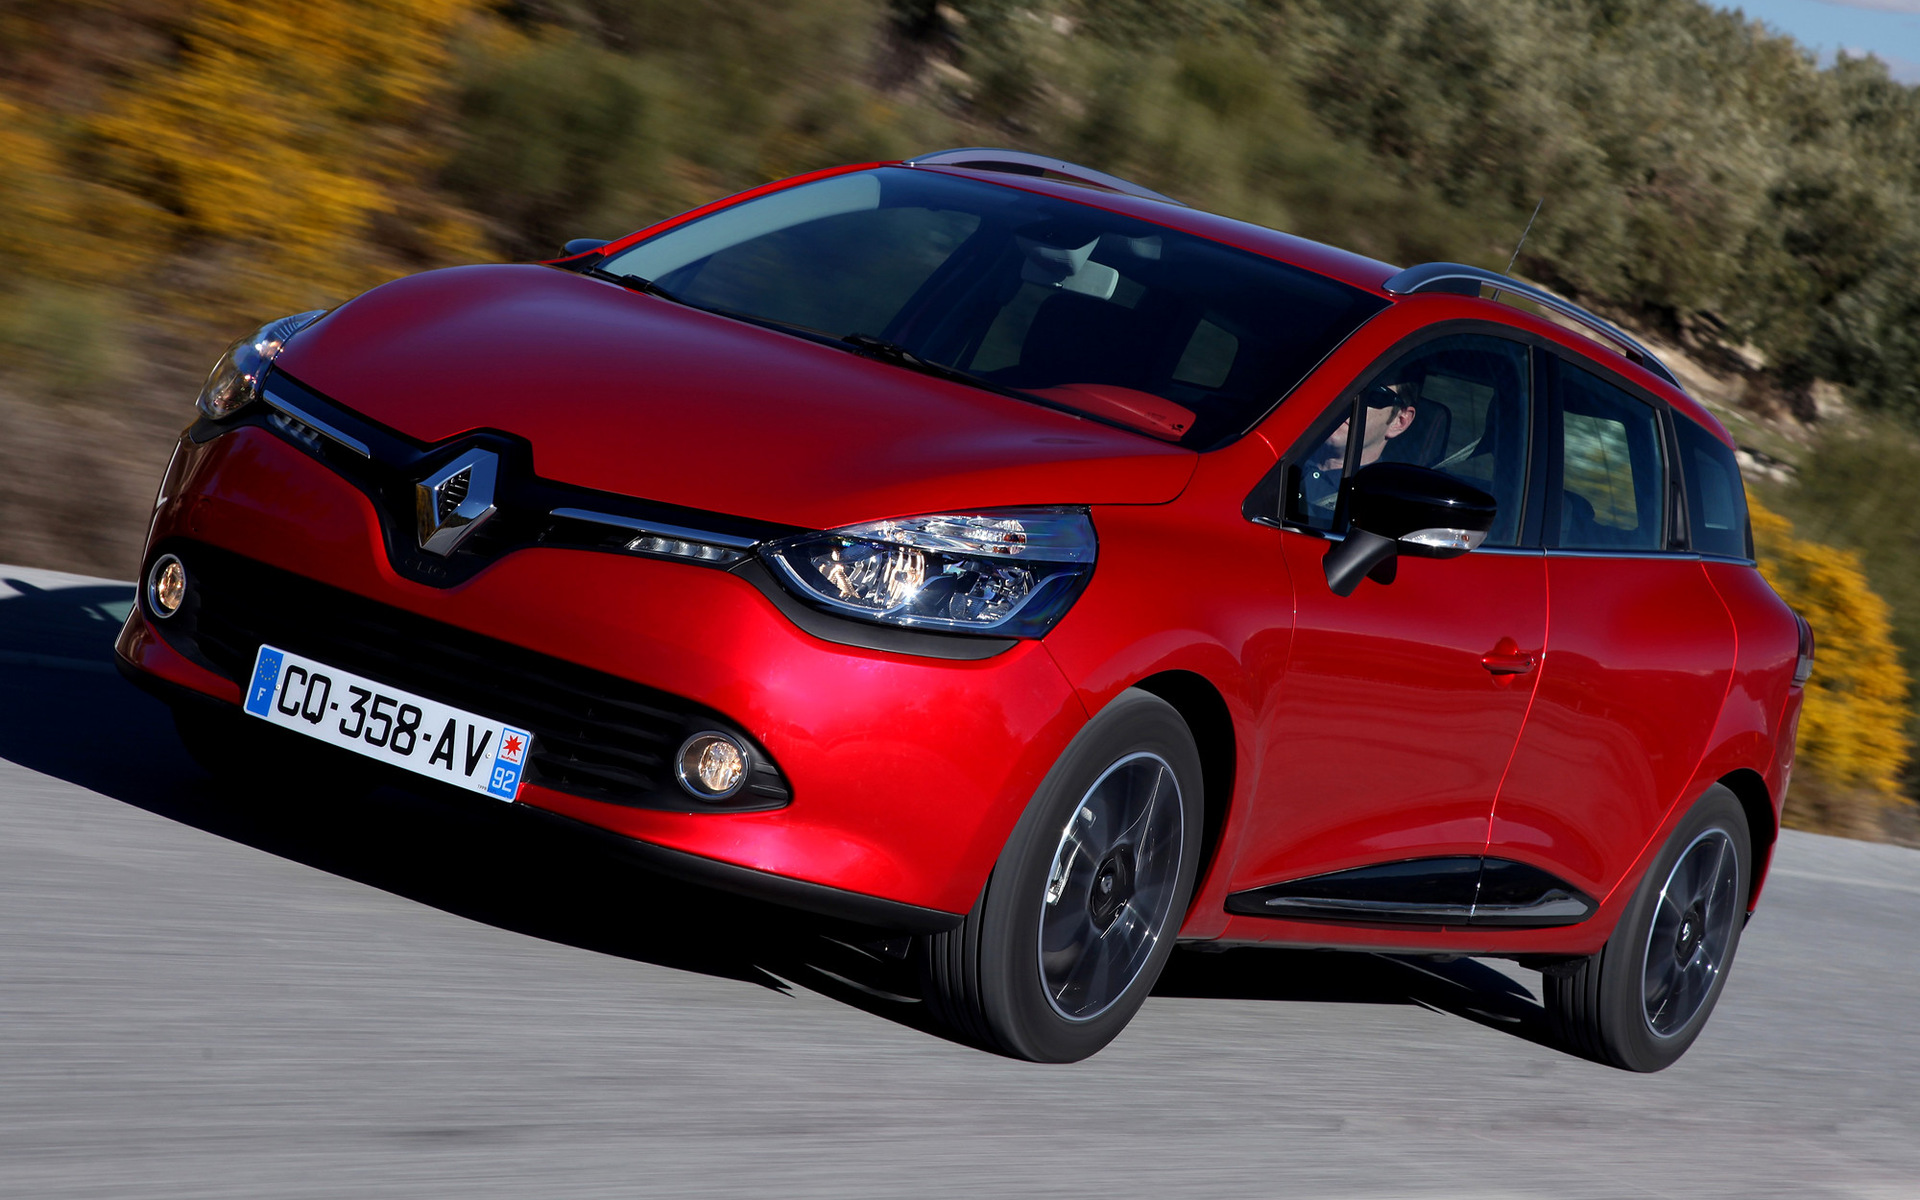 renault clio estate 2013 wallpapers and hd images car. Black Bedroom Furniture Sets. Home Design Ideas